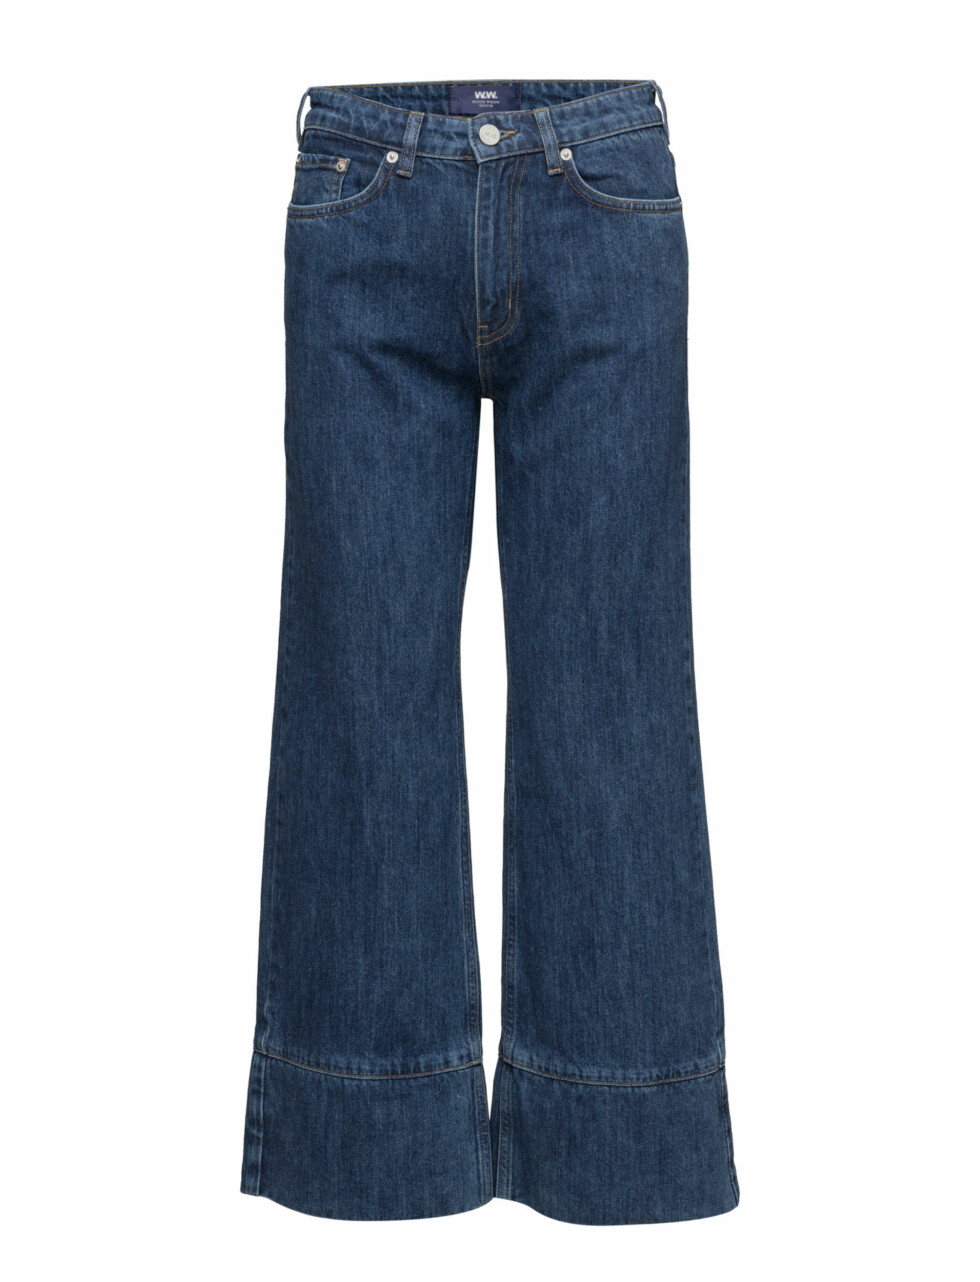 Jeans fra Wood Wood via Boozt.com |799,-| https://www.boozt.com/no/no/wood-wood/gwen-dark-blue-vintage_15763626/15763633?navId=69882&group=listing&position=1000000